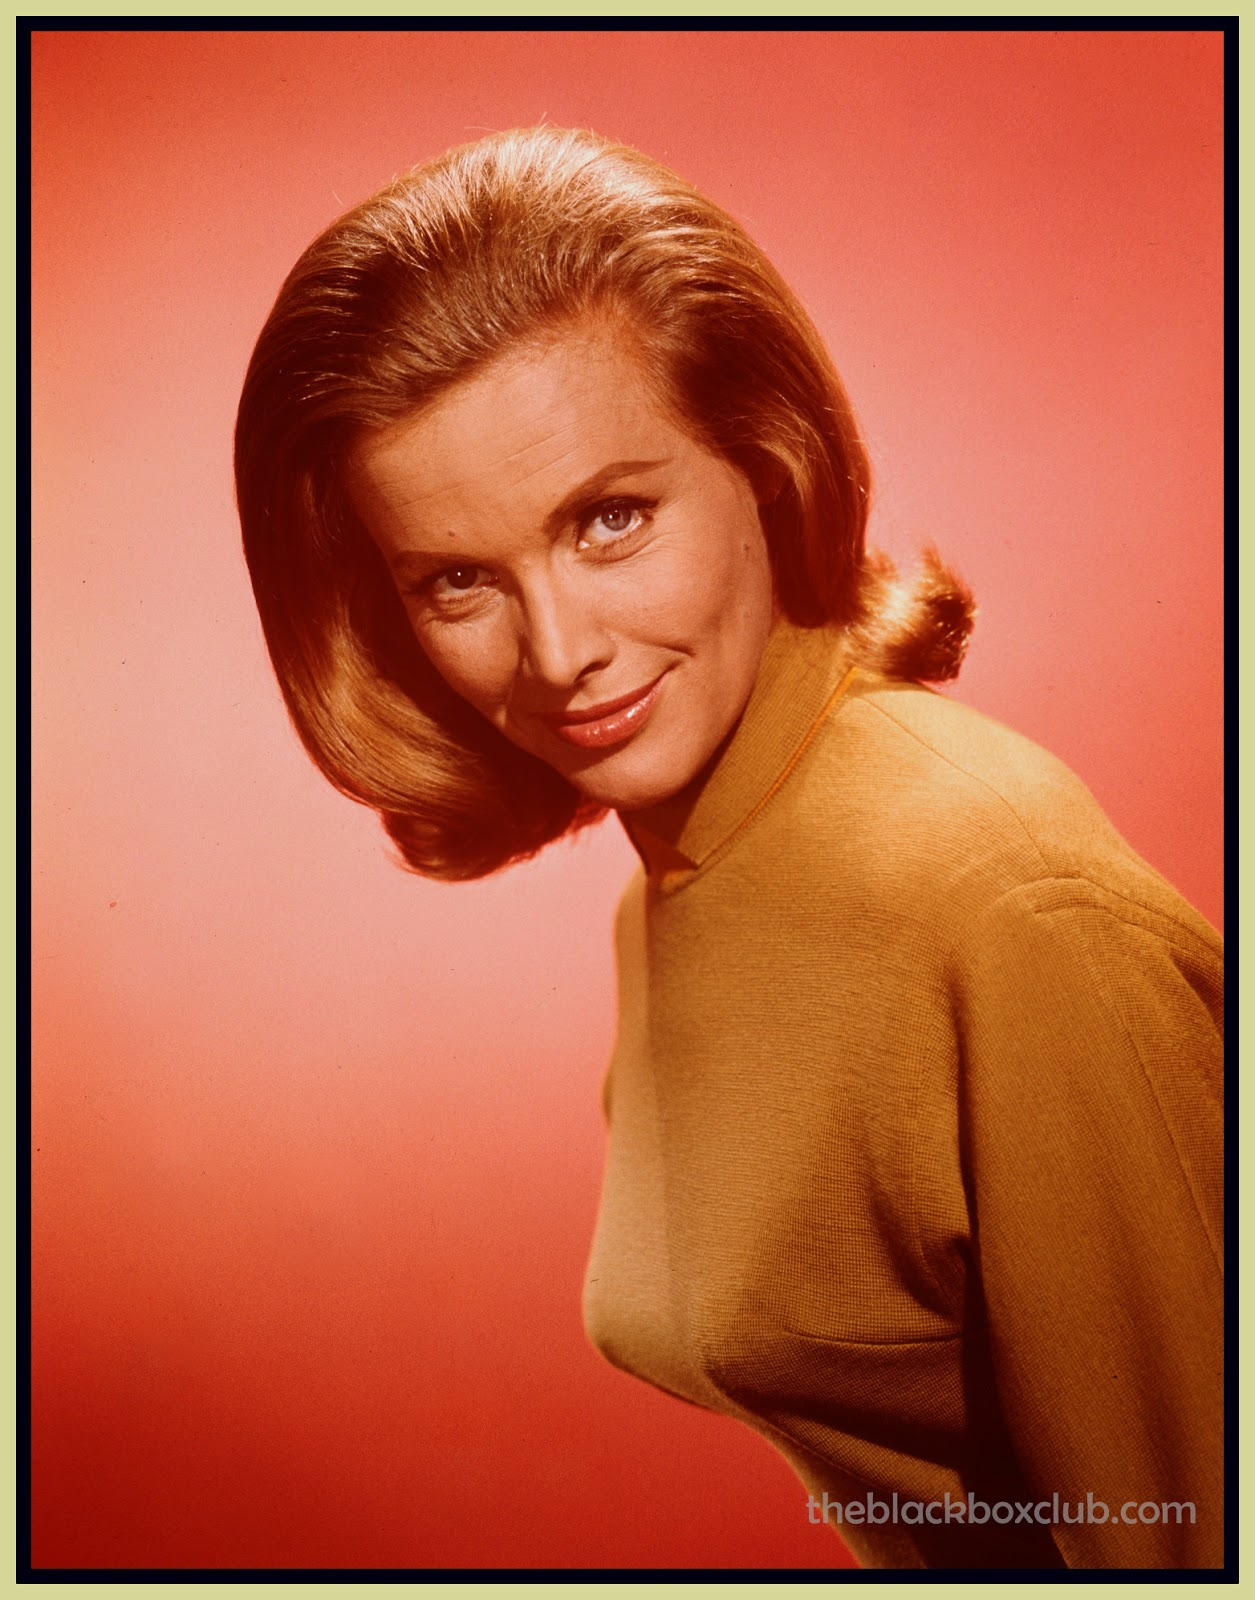 honor blackman sitcom